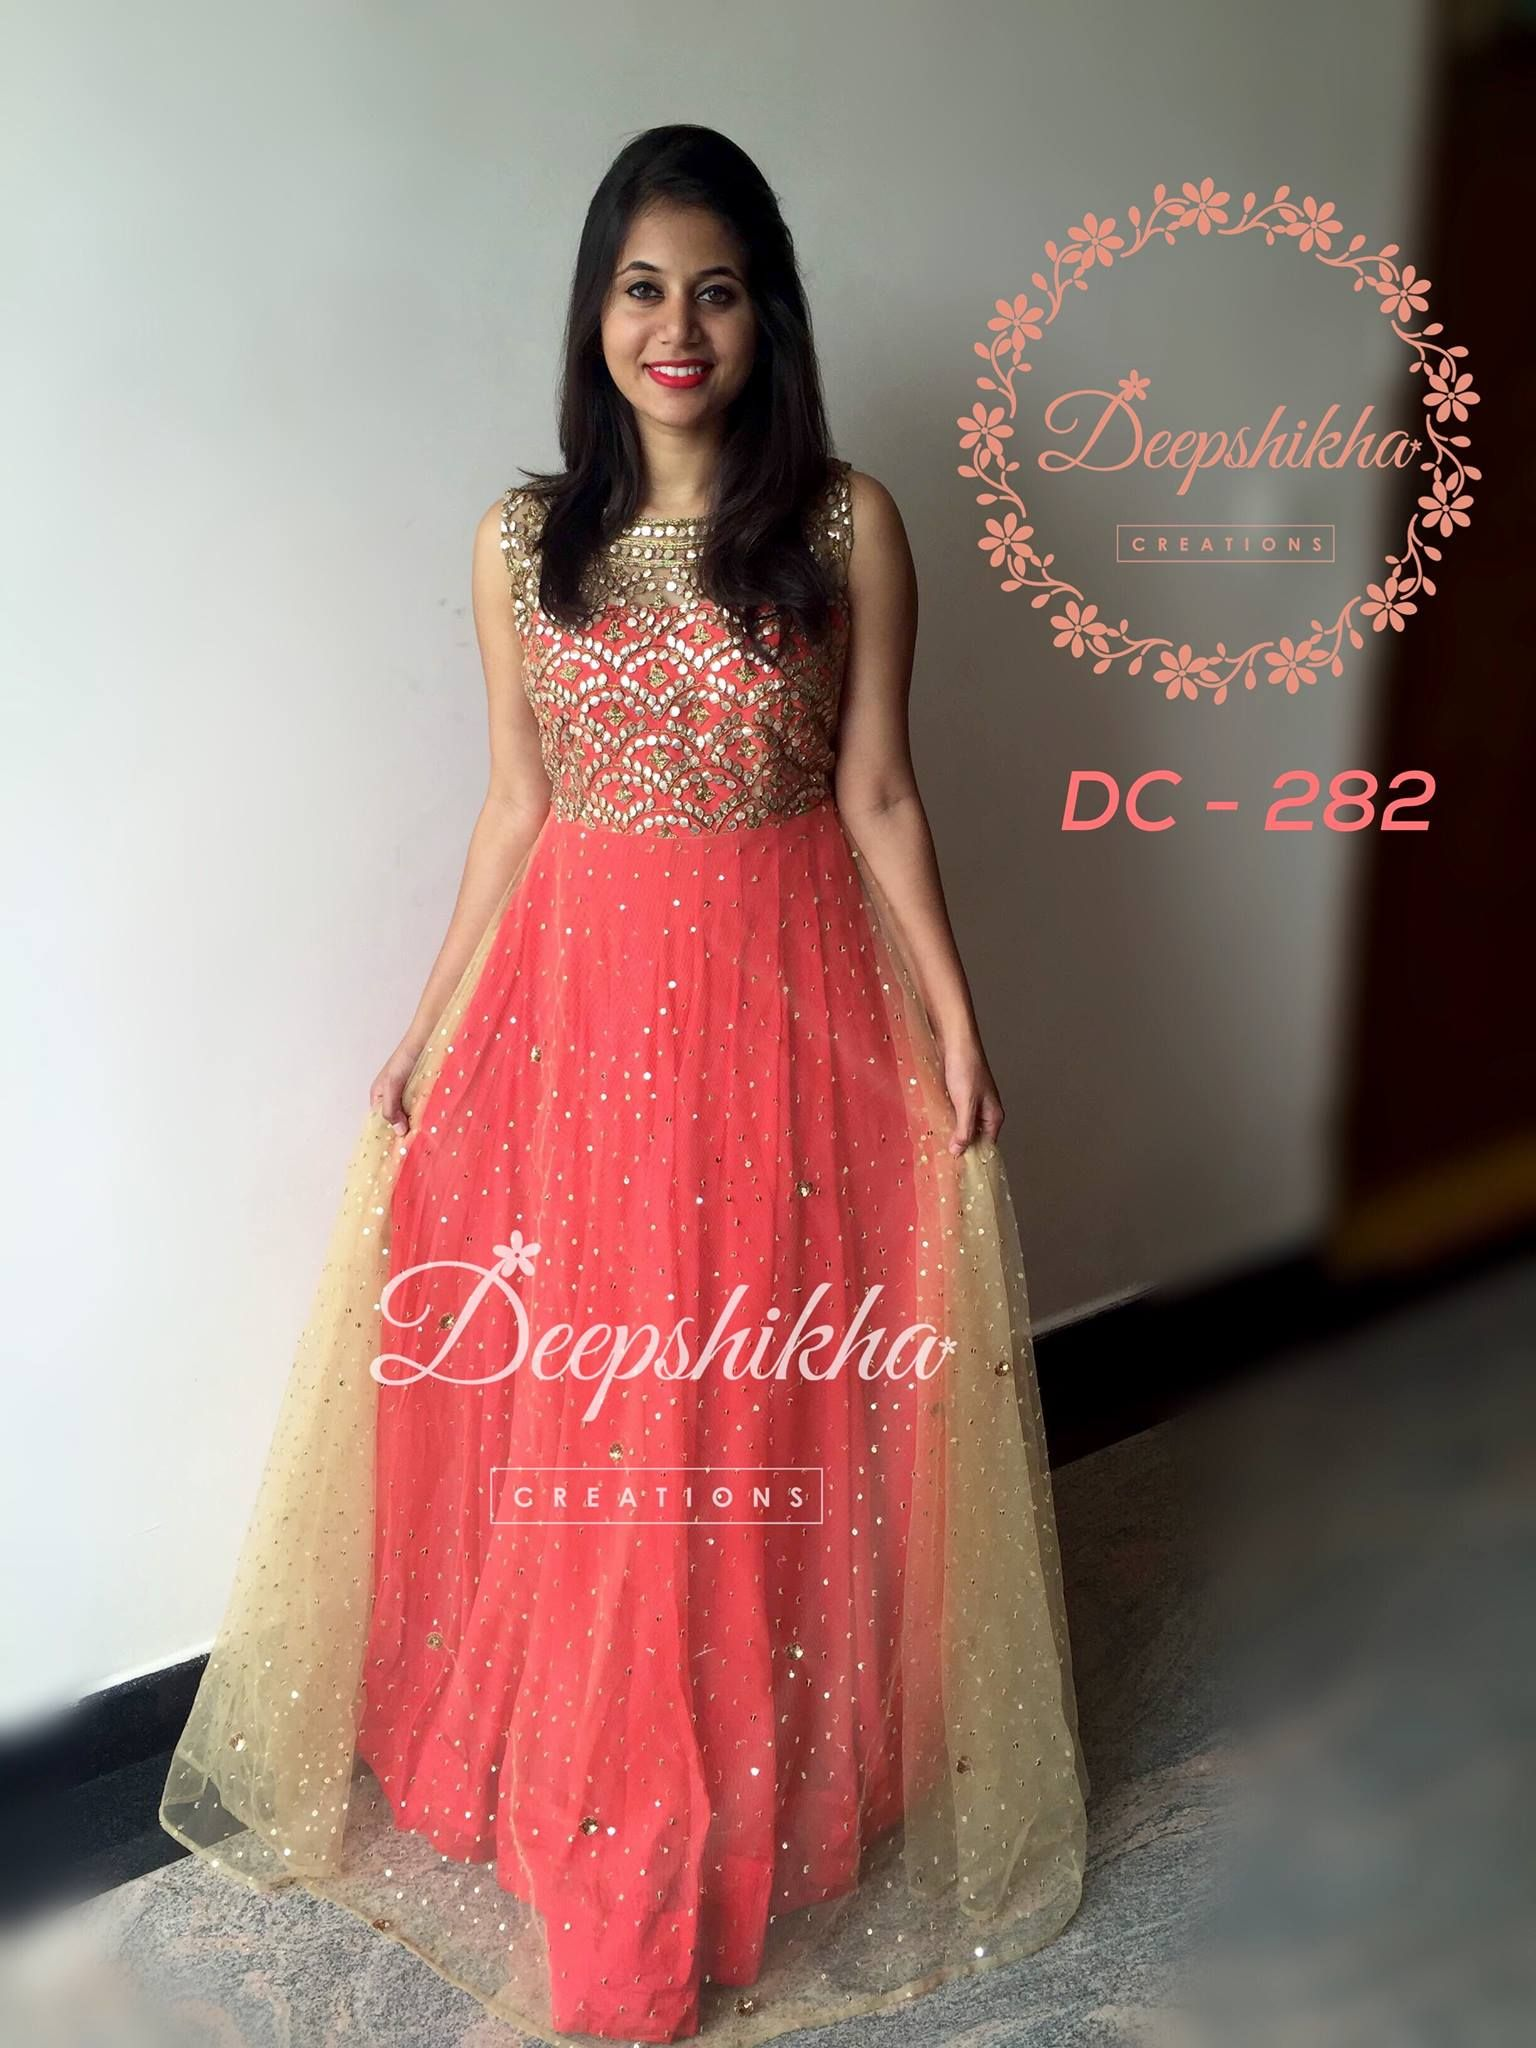 605c14f758182 DC - 282For queries kindly inbox orEmail - deepshikhacreations gmail.com  Whatsapp   Call - 919059683293 04 July 2016 29 November 2016